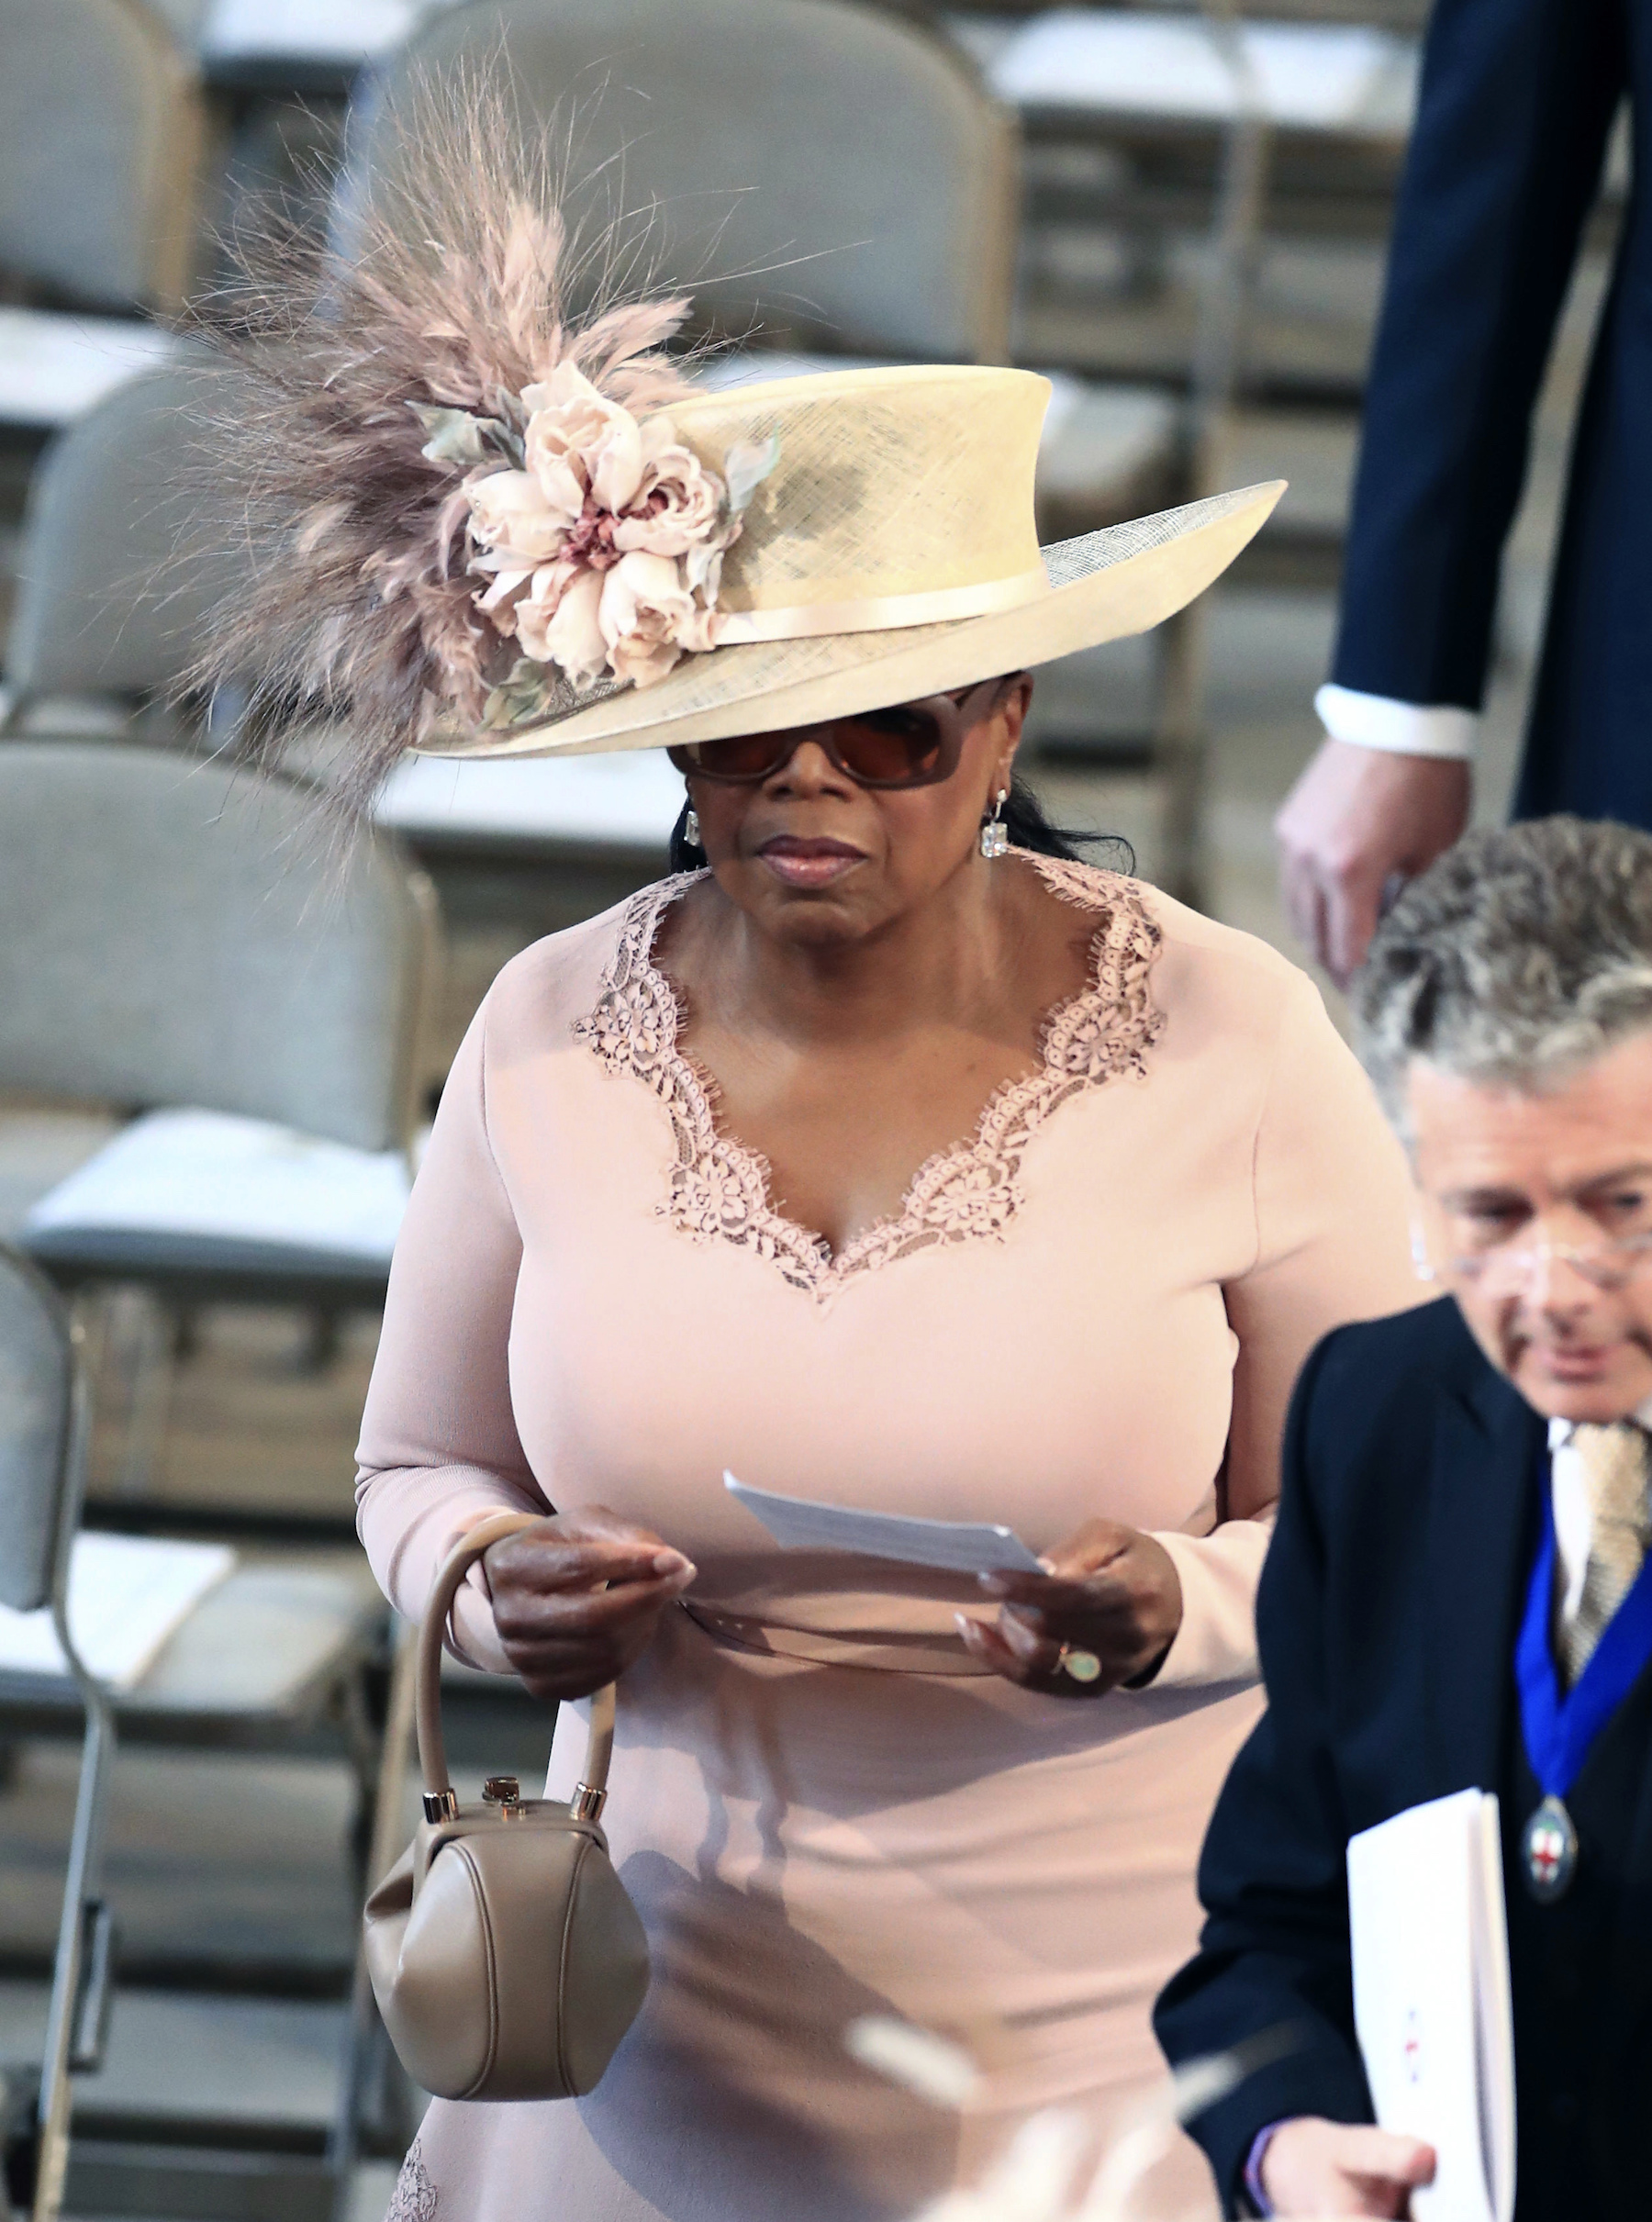 <div class='meta'><div class='origin-logo' data-origin='AP'></div><span class='caption-text' data-credit='Danny Lawson/PA Wire'>Oprah Winfrey arrives in St George's Chapel at Windsor Castle for the wedding of Prince Harry and Meghan Markle.</span></div>